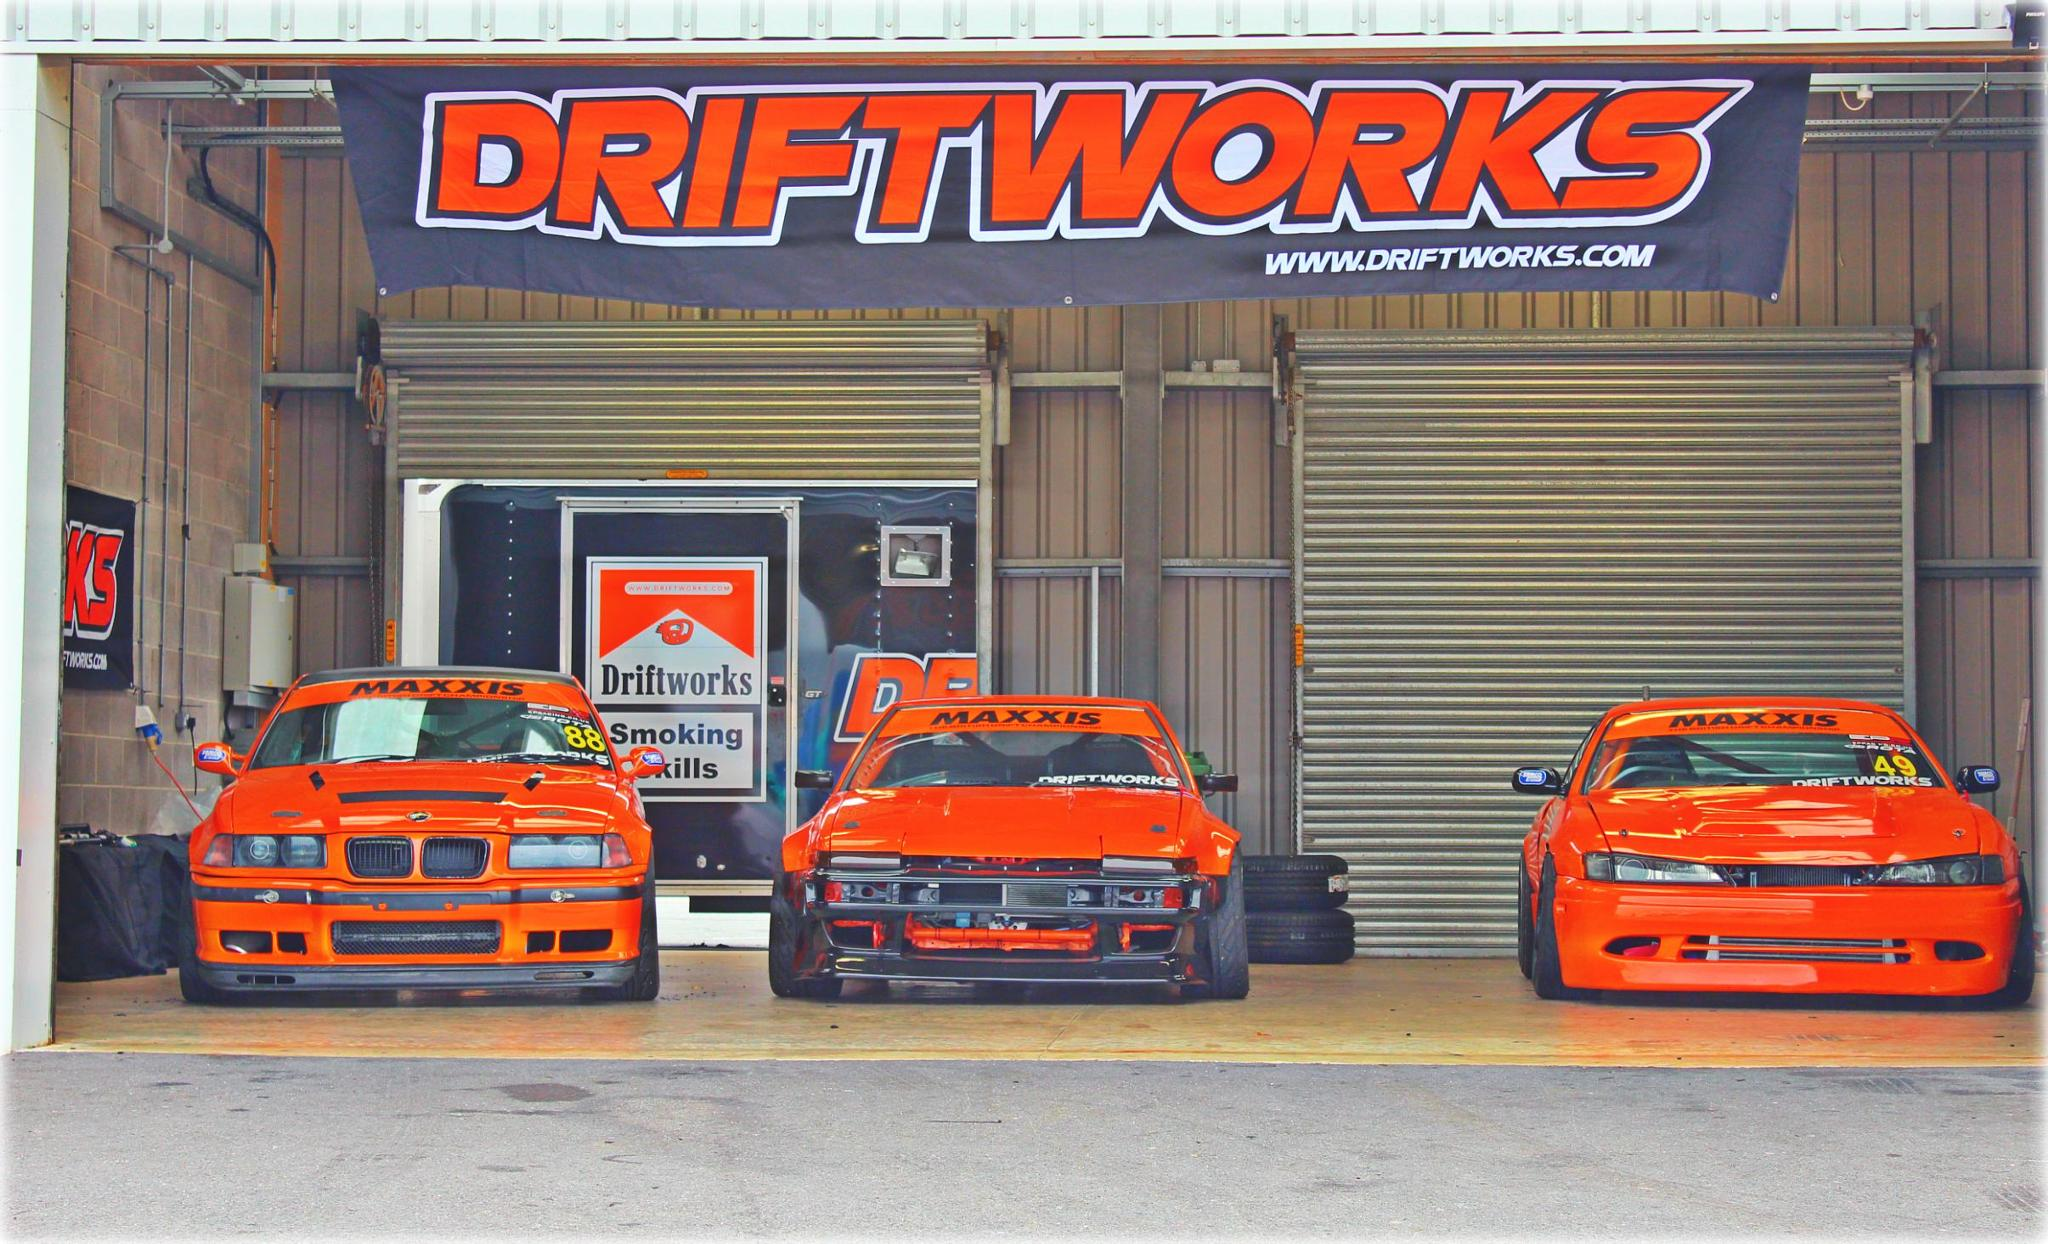 Drift Works by mandy.norris